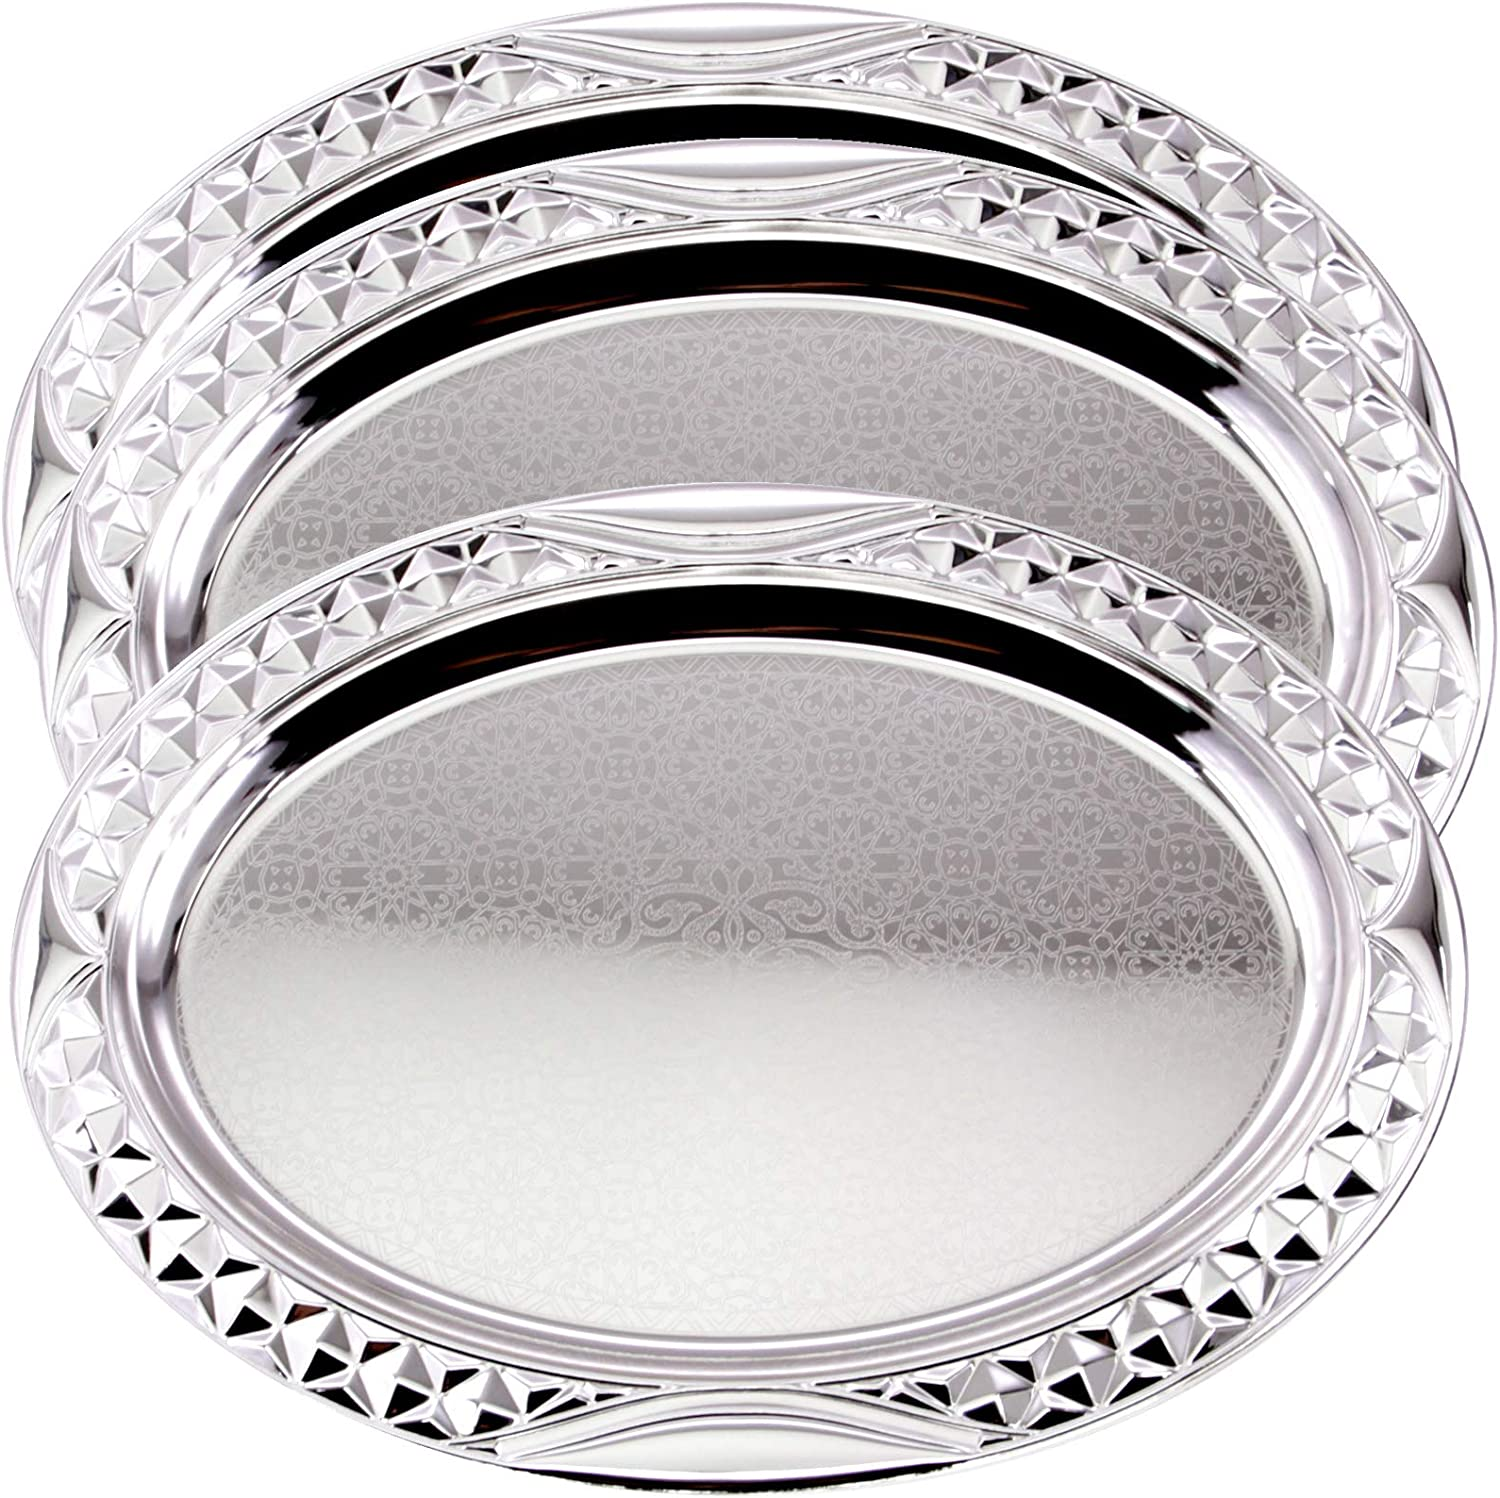 Maro Megastore (Pack of 3 20.2 inch x 14.8 inch Oval Chrome Plated Serving Tray Stylish Design Floral Engraved Edge Decorative Party Birthday Wedding Dessert Buffet Wine Platter Plate TLA-313